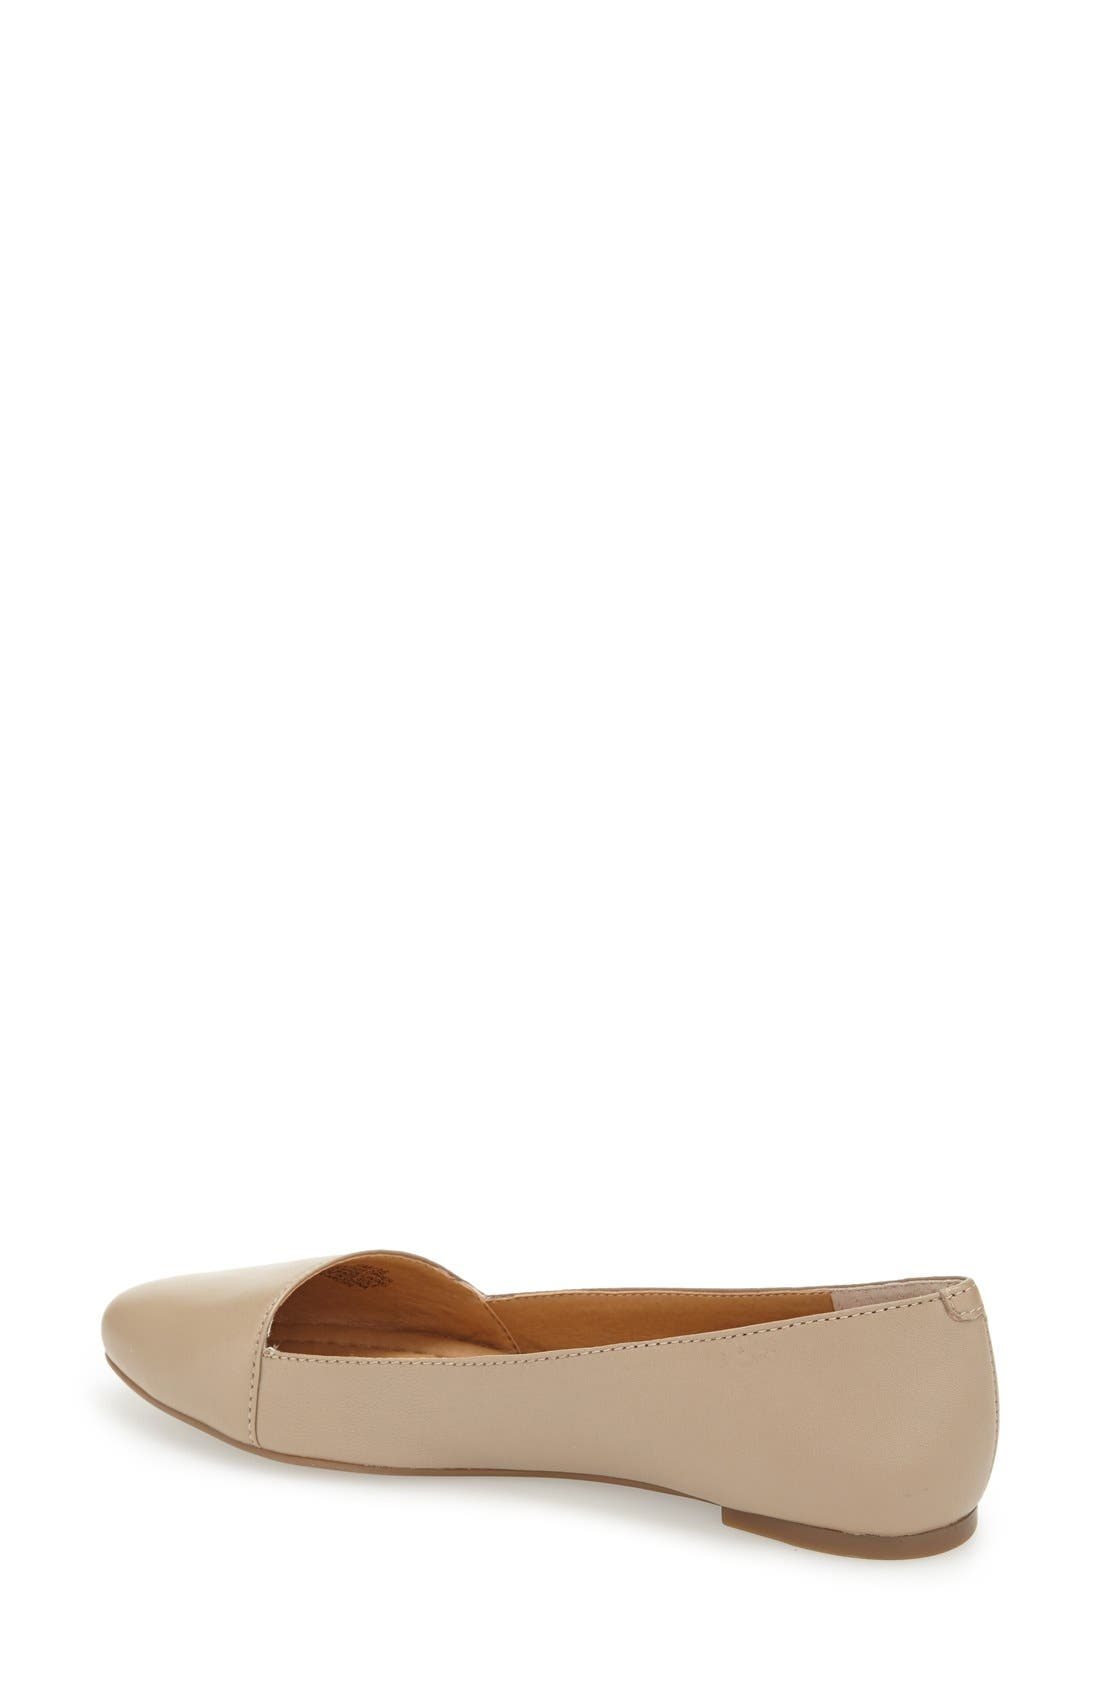 Alternate Image 4  - Lucky Brand 'Archh' Flat (Women)